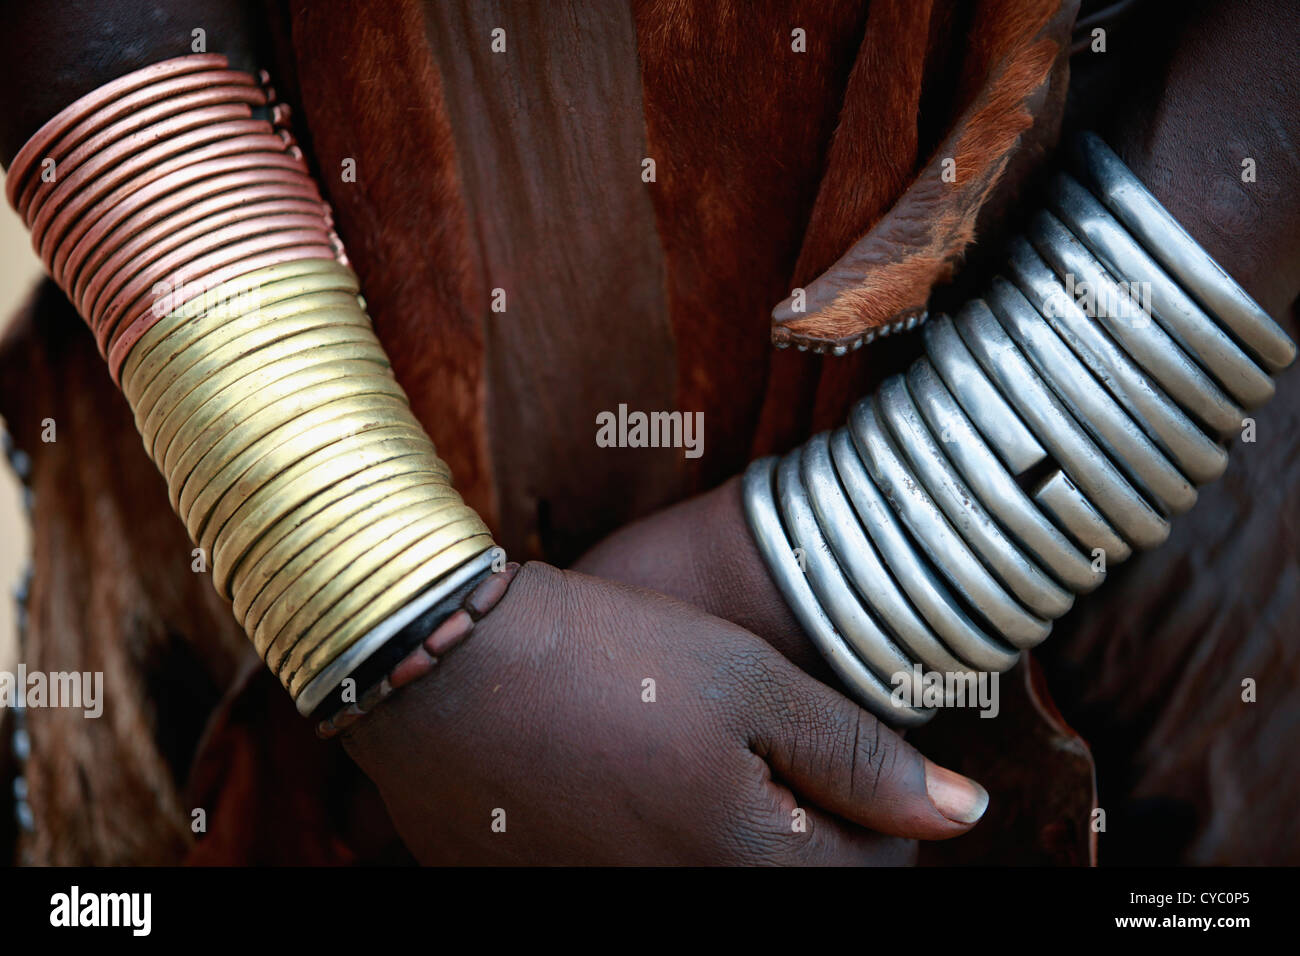 Body adornment of a tribal Hamar woman. - Stock Image